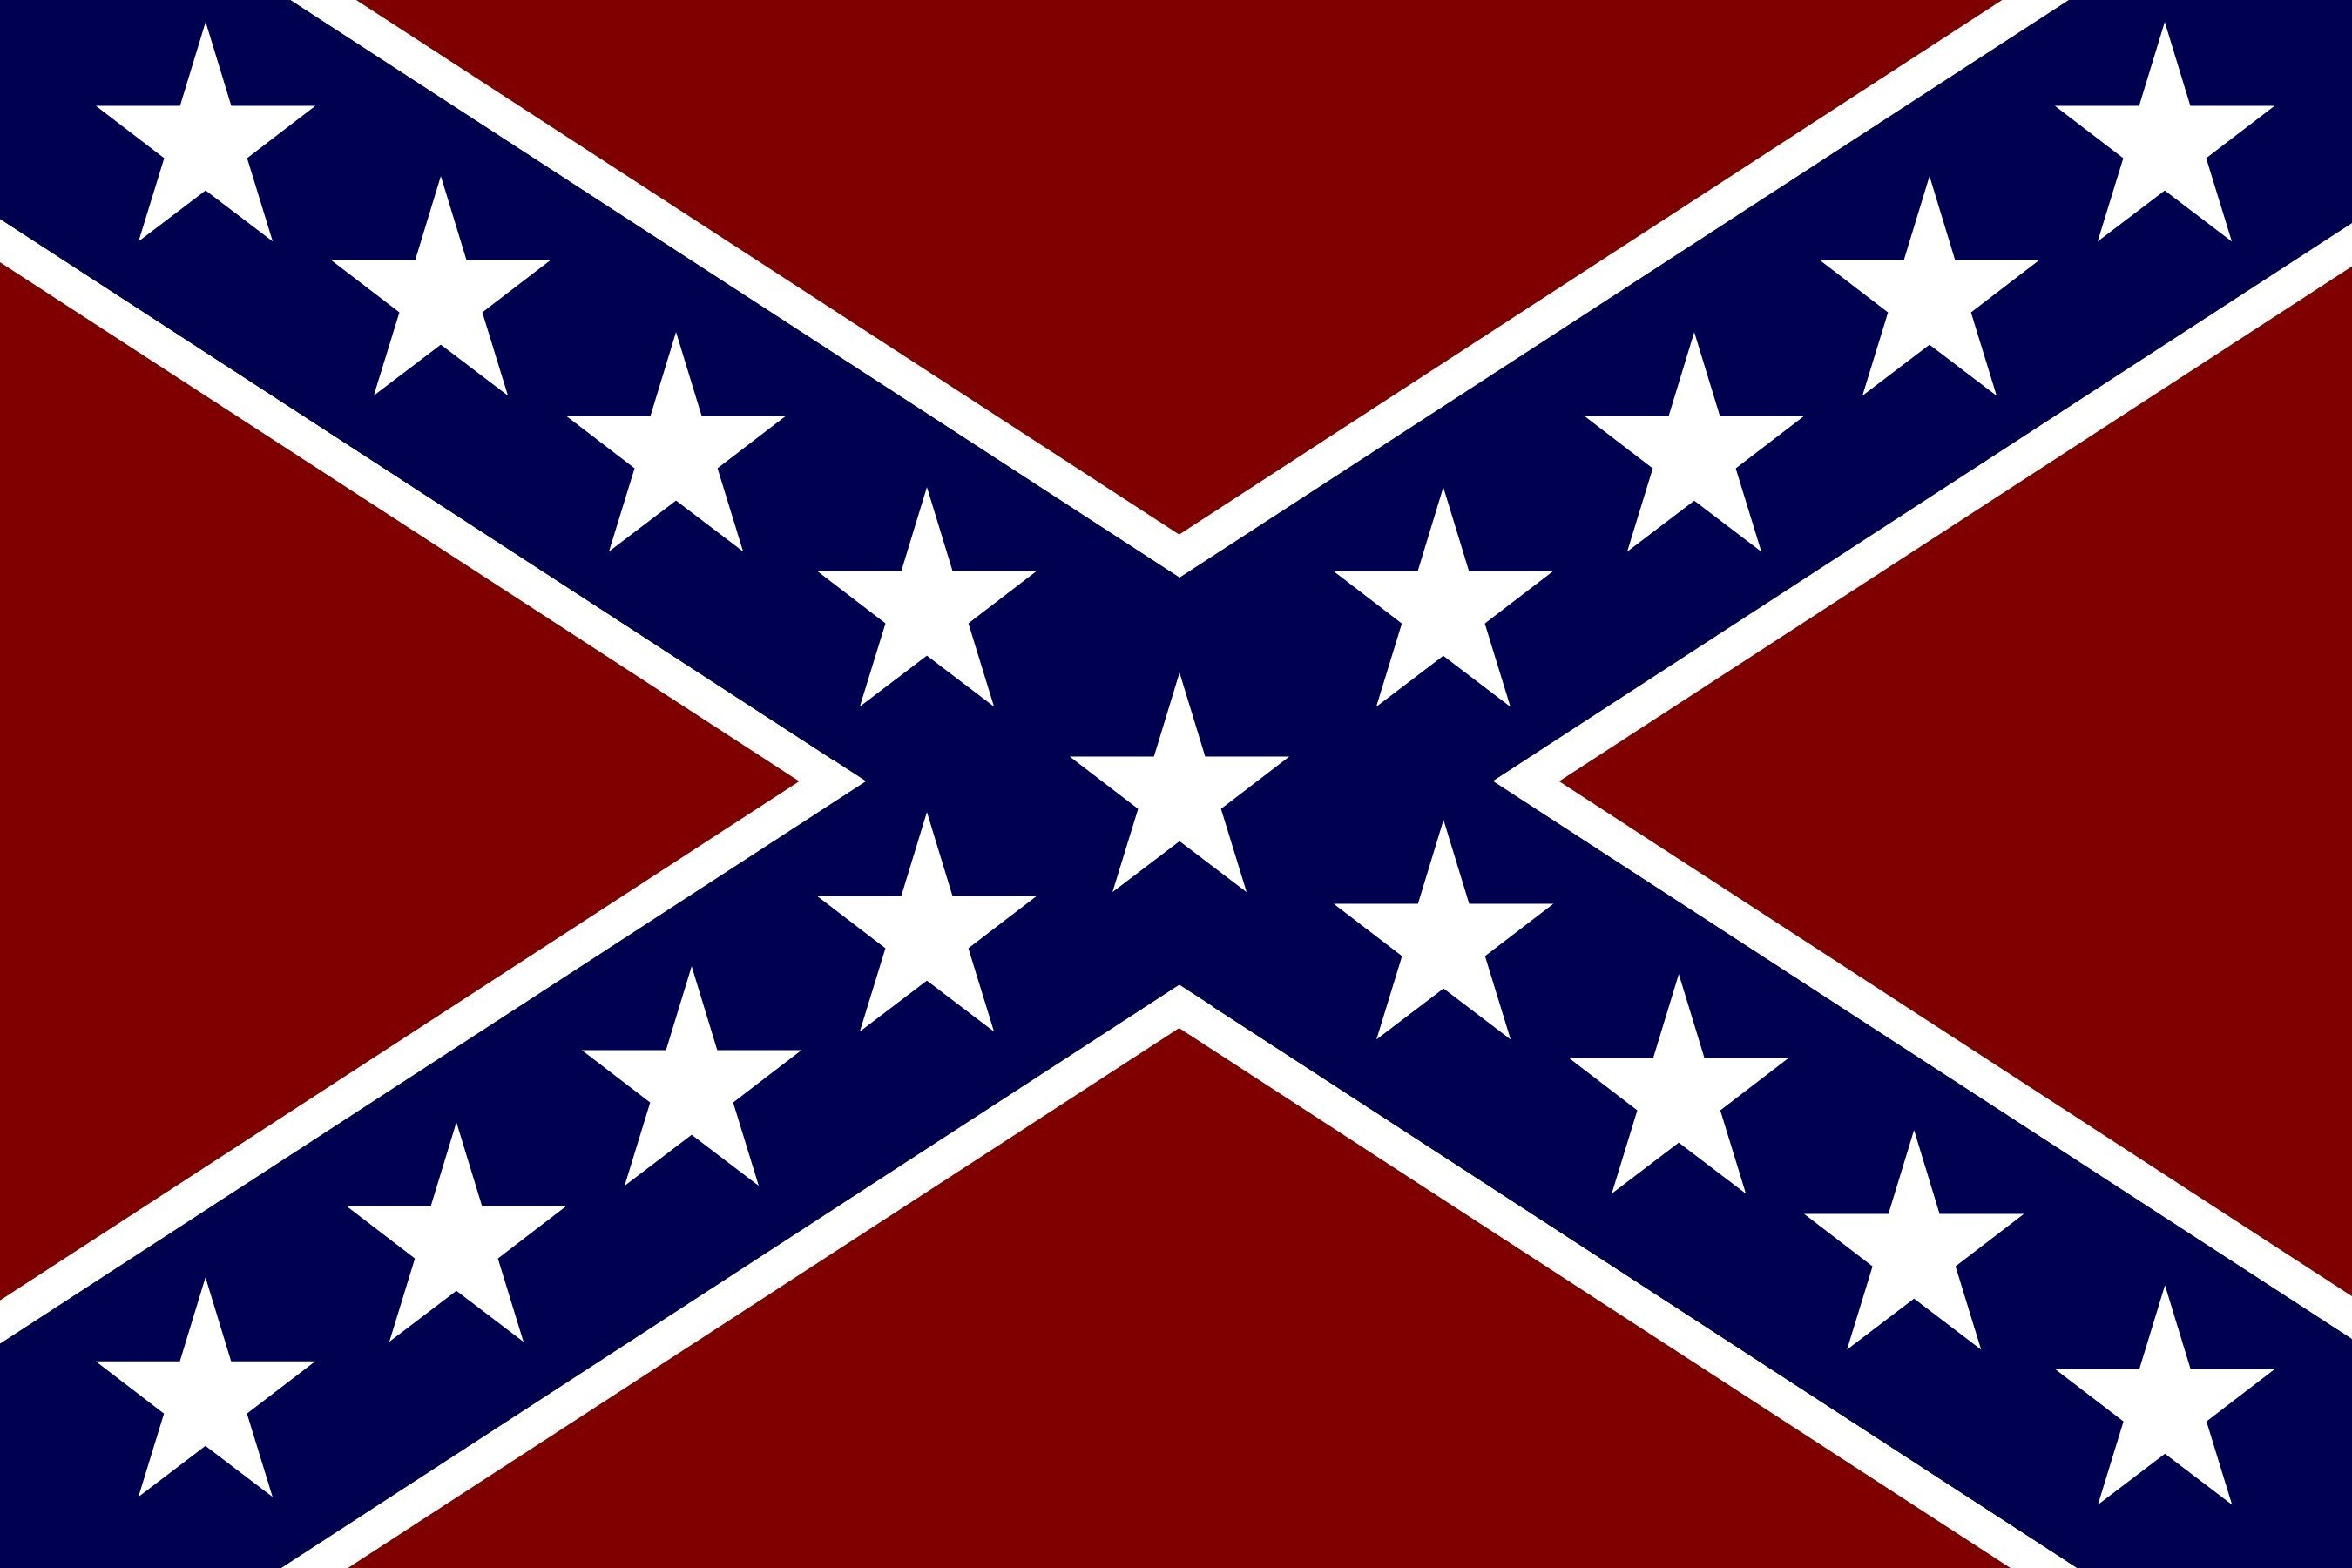 states csa civil war rebel dixie military poster wallpaper background 2700x1800